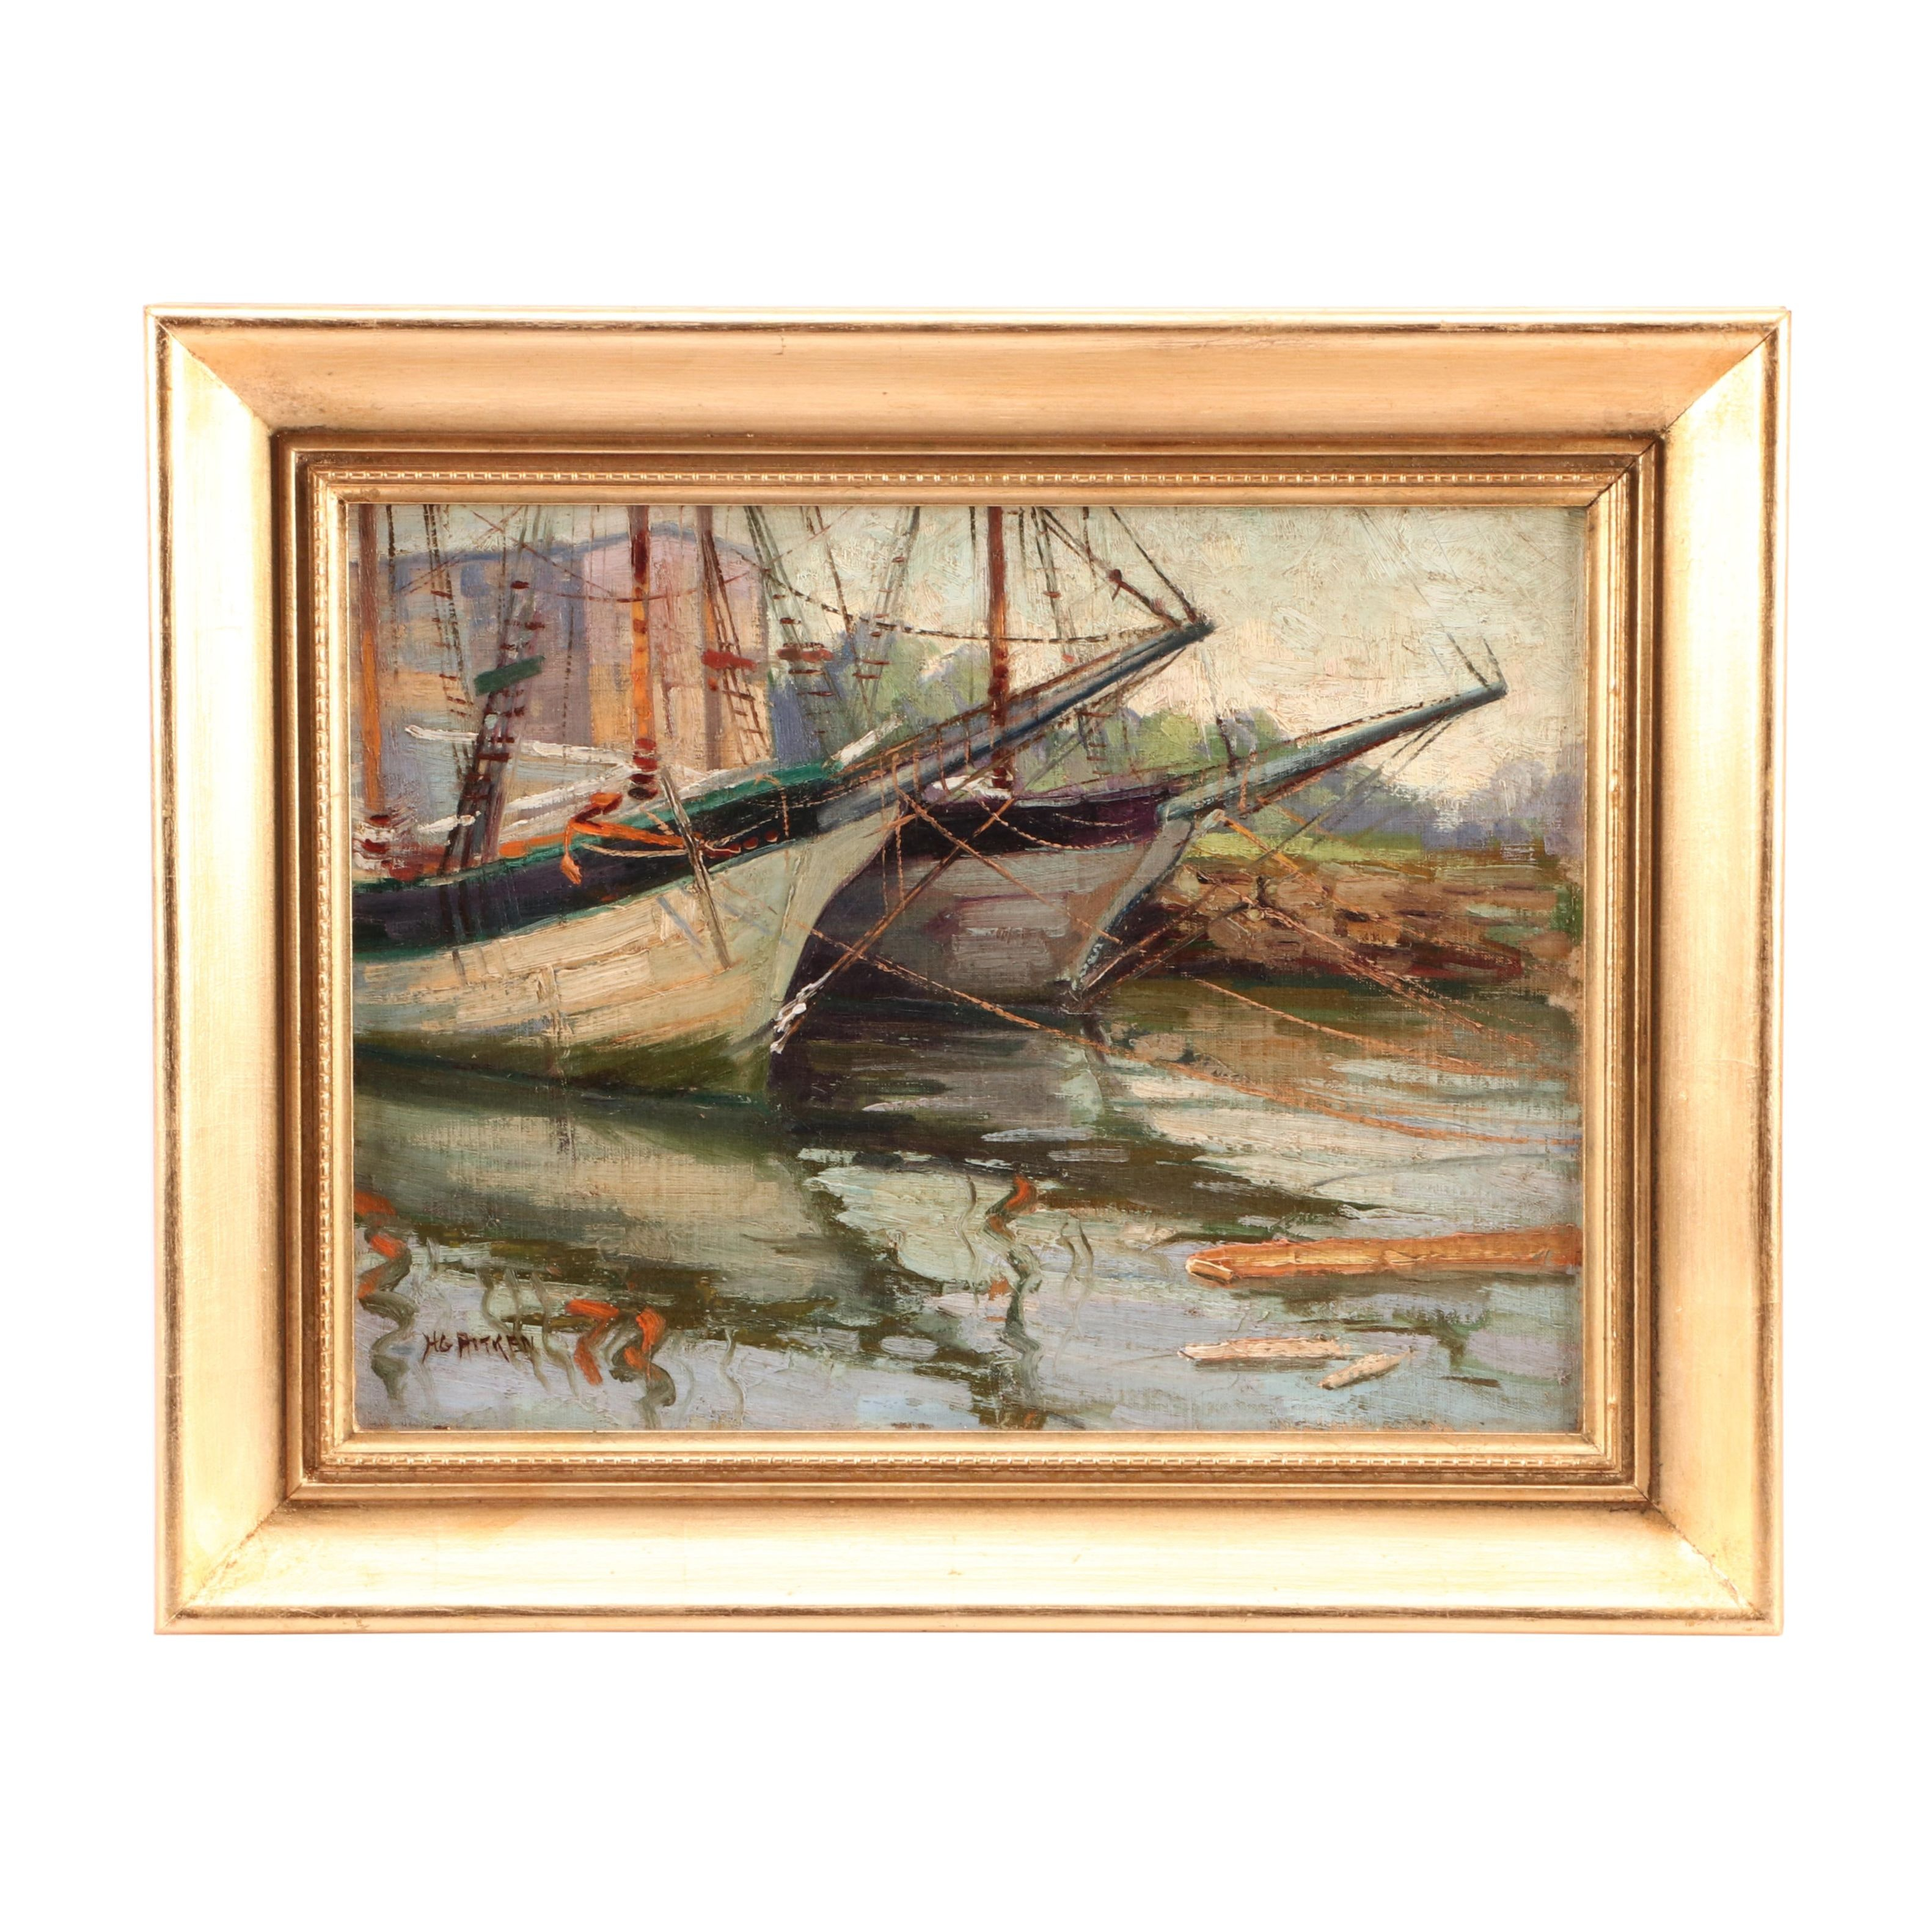 Harry Aitken Oil Painting of Harbor Scene